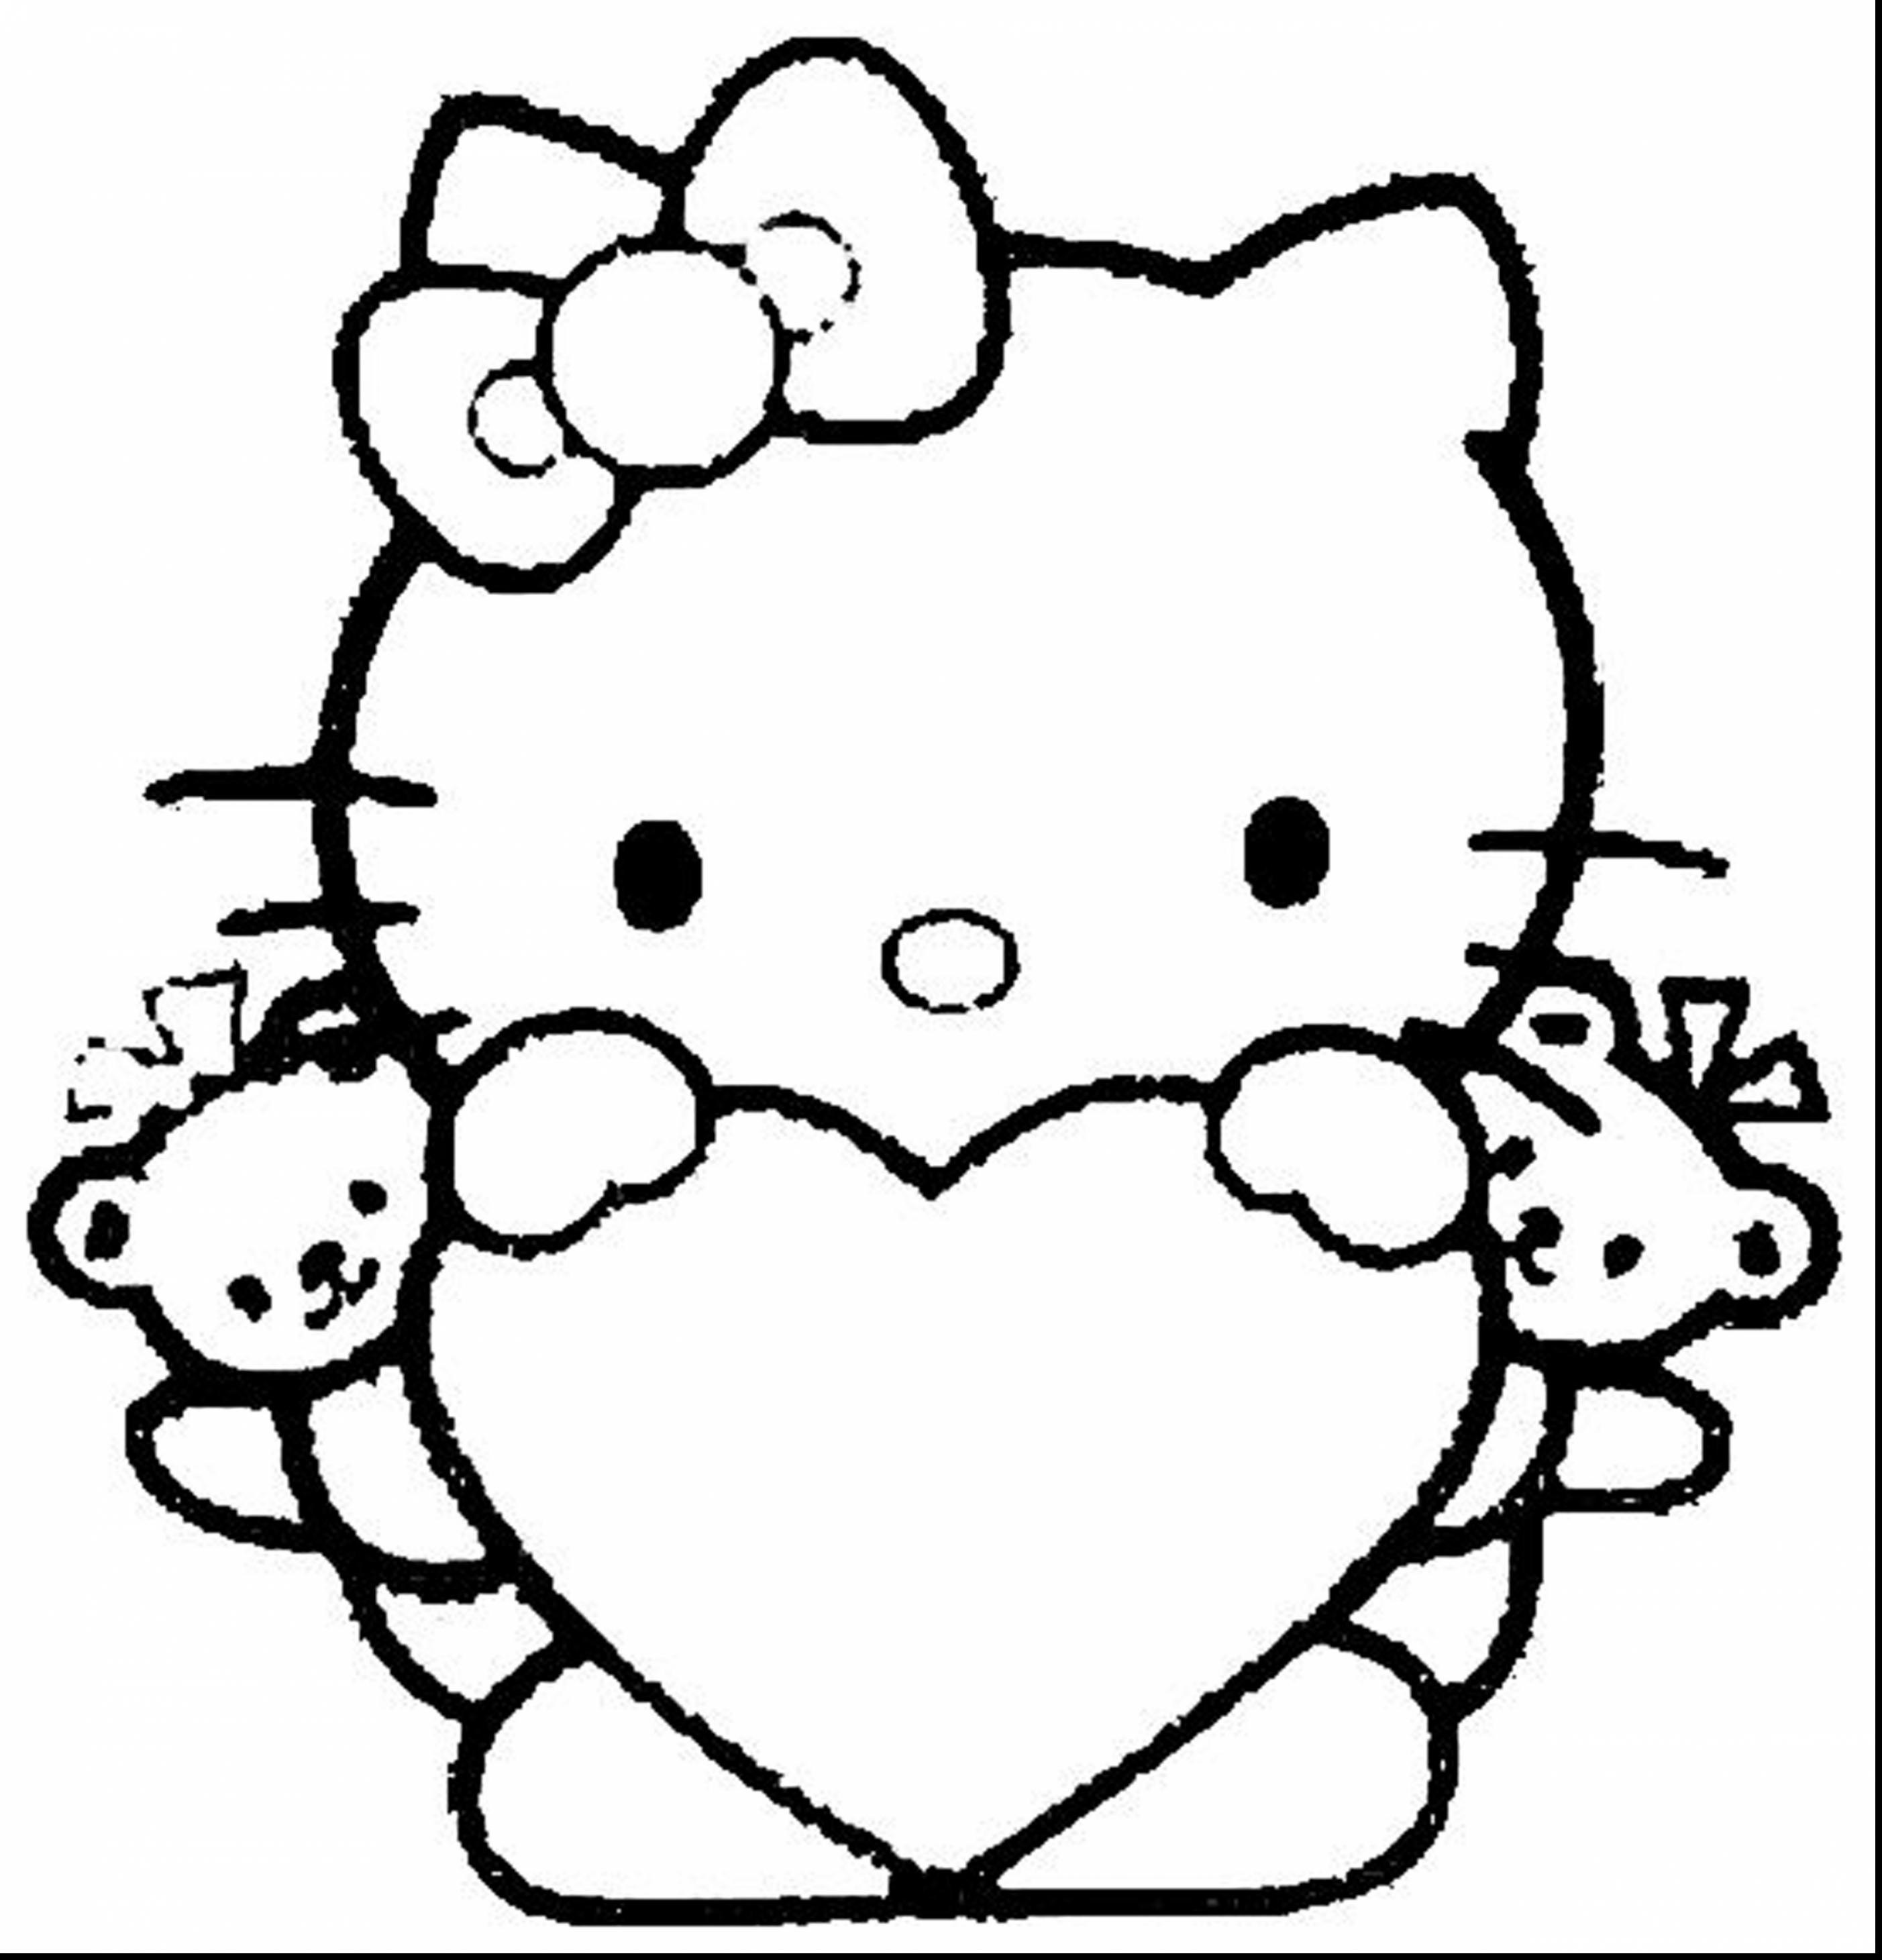 coloring cute hello kitty drawing free coloring pages printable pictures to color kids drawing hello kitty coloring cute